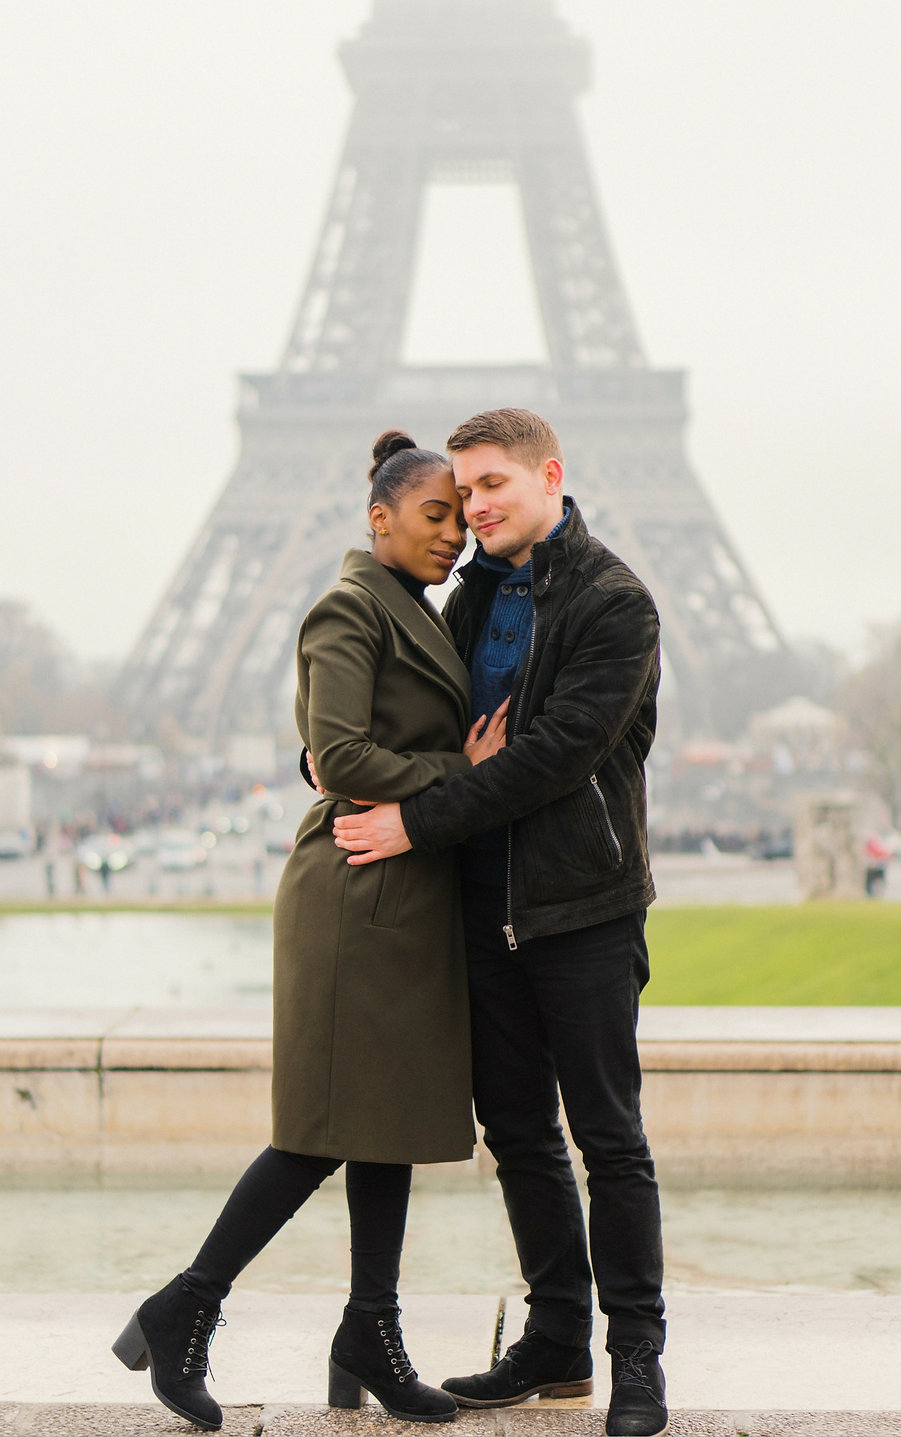 Paris prewedding photos,Paris winter elopement, paris winter engagement,paris proposal, paris destination photographer, paris winter elopement,piccadilly studios